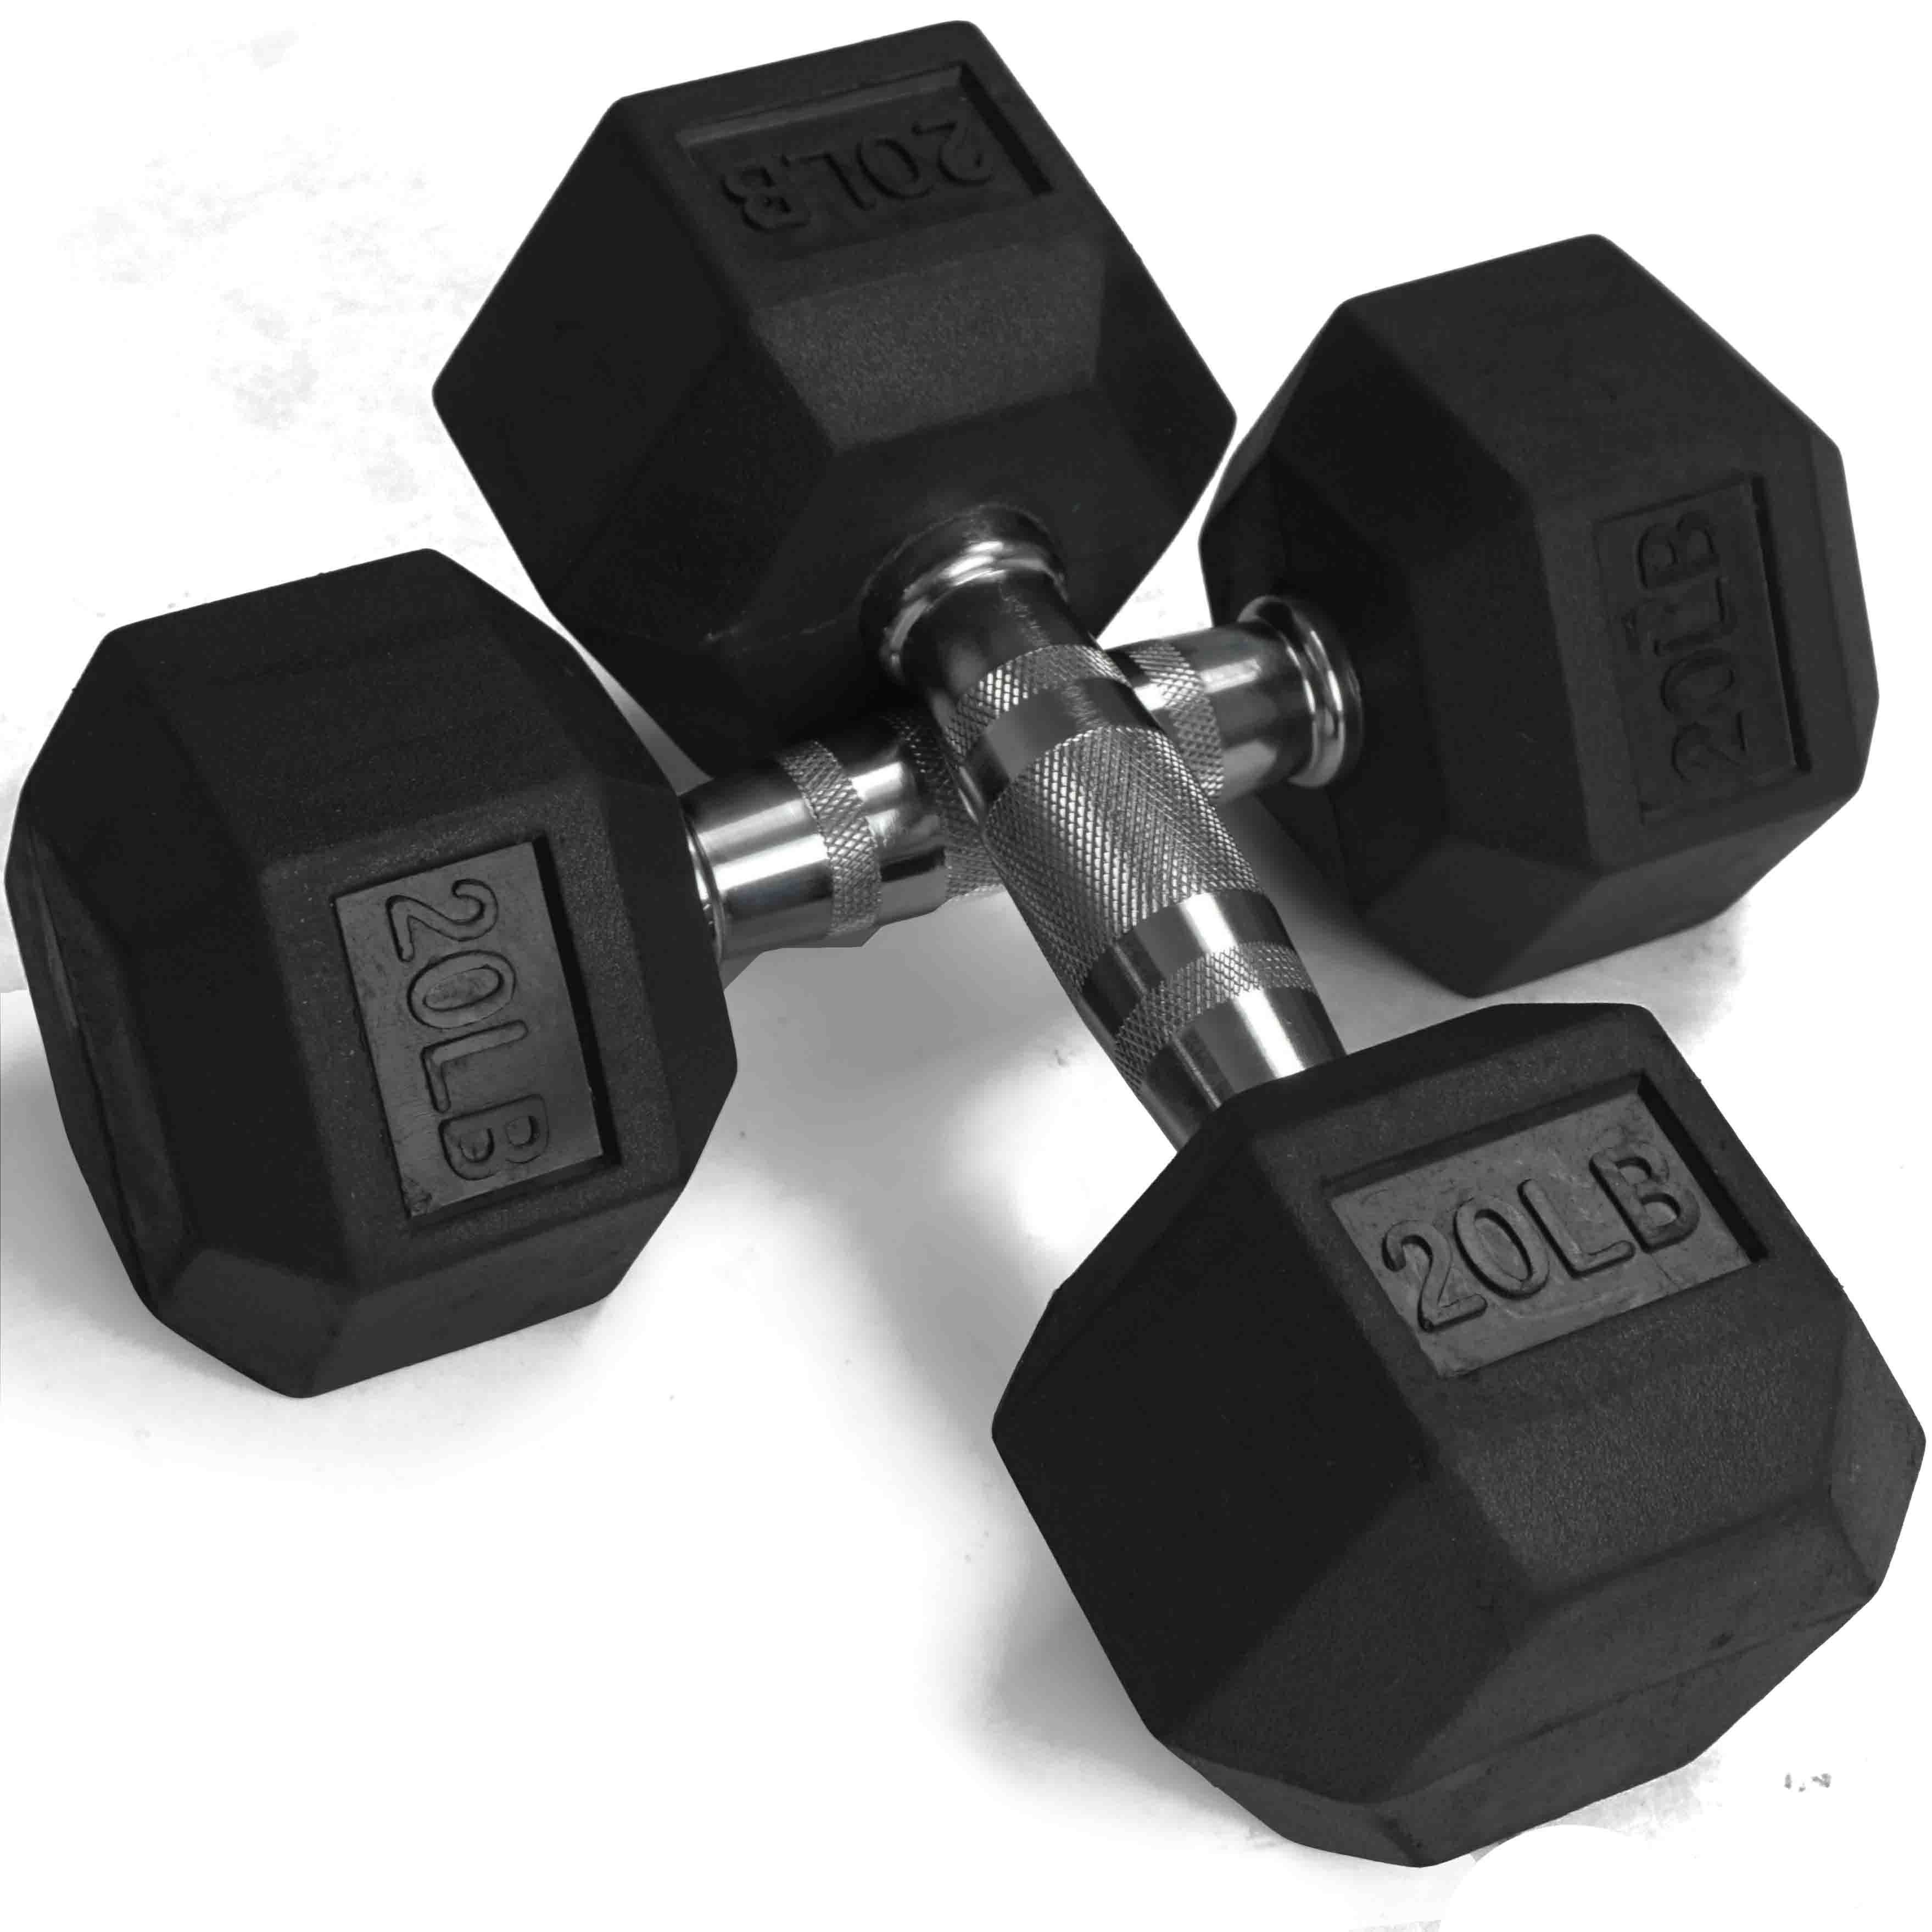 Pair of 20 lb Black Rubber Coated Hex Dumbbells Weight Training Set, 40 lb